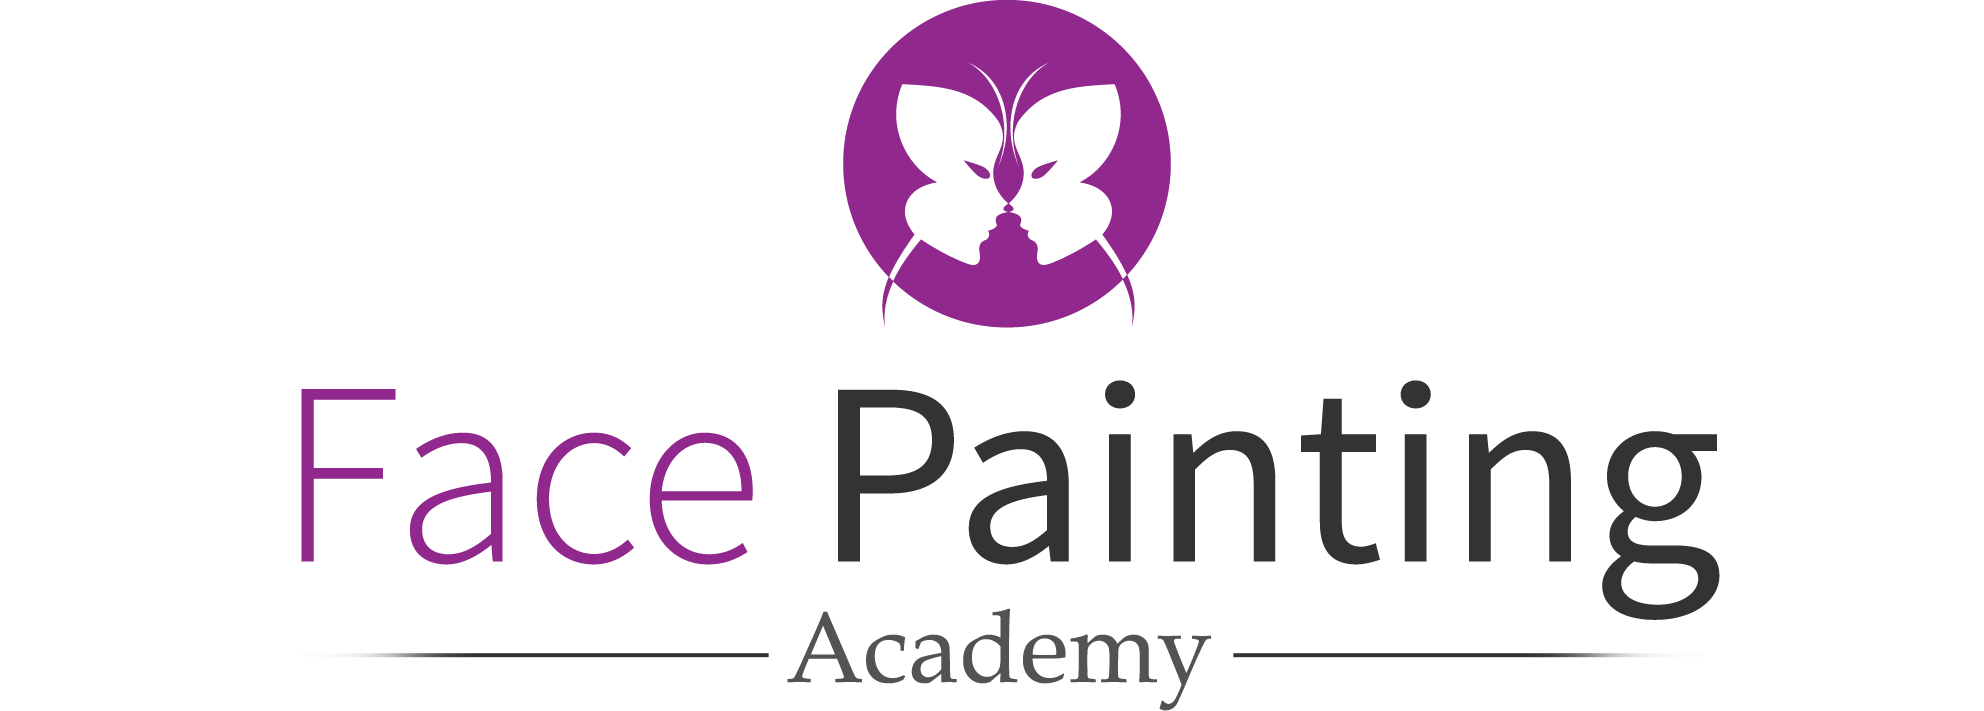 Face Painting Academy